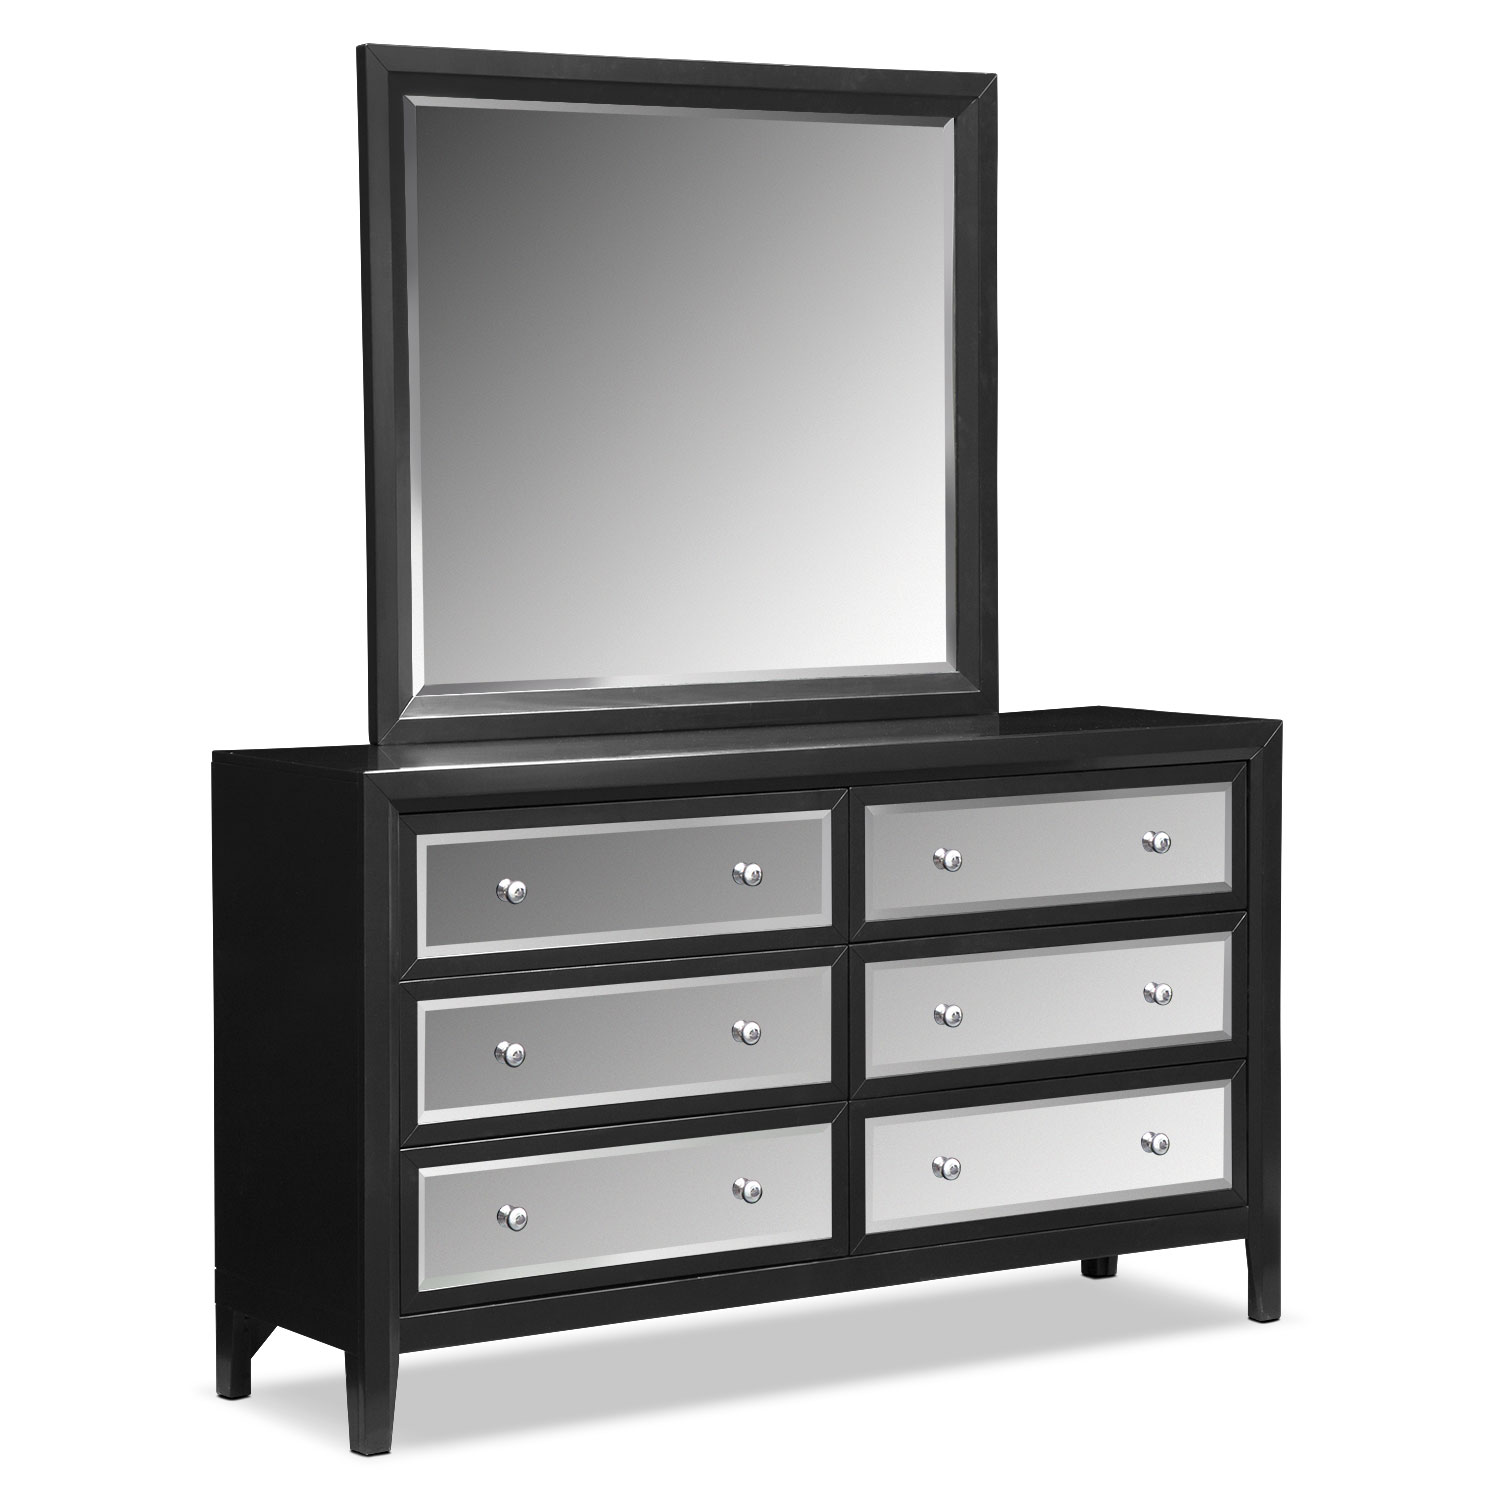 Bonita Dresser and Mirror - Black